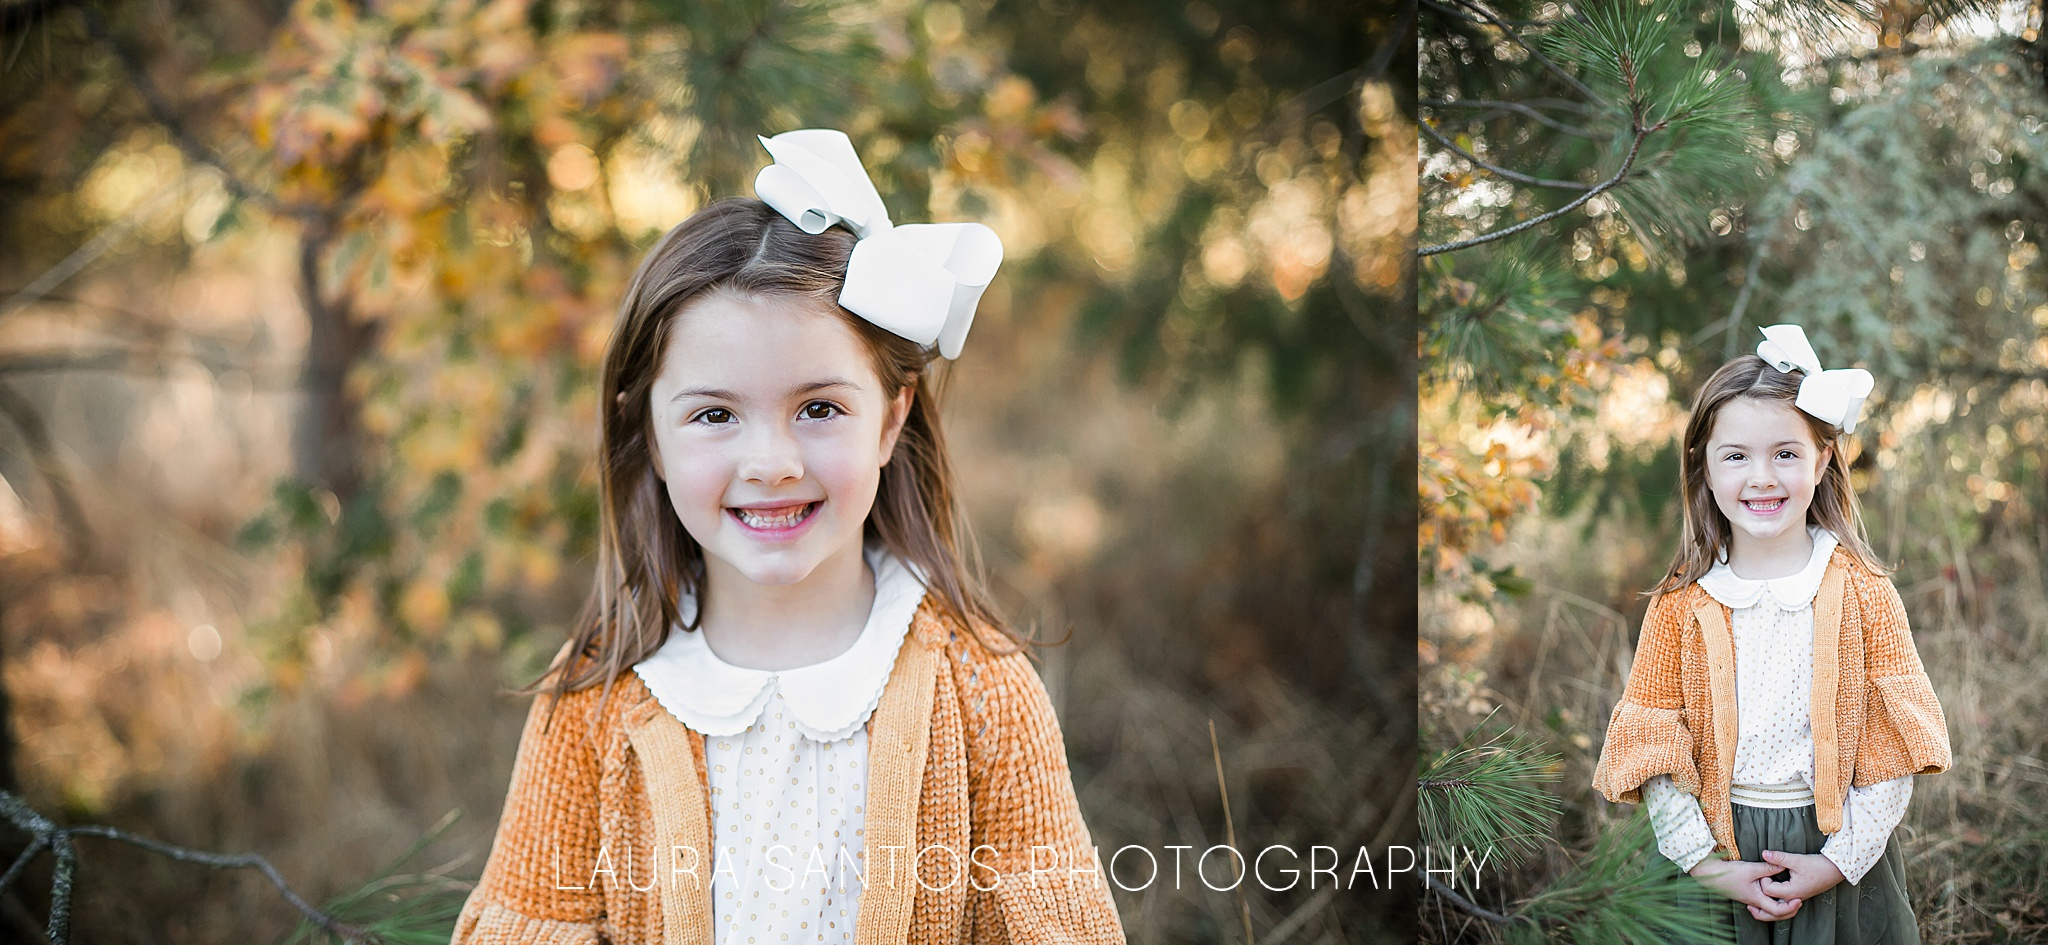 Laura Santos Photography Portland Oregon Family Photographer_0892.jpg